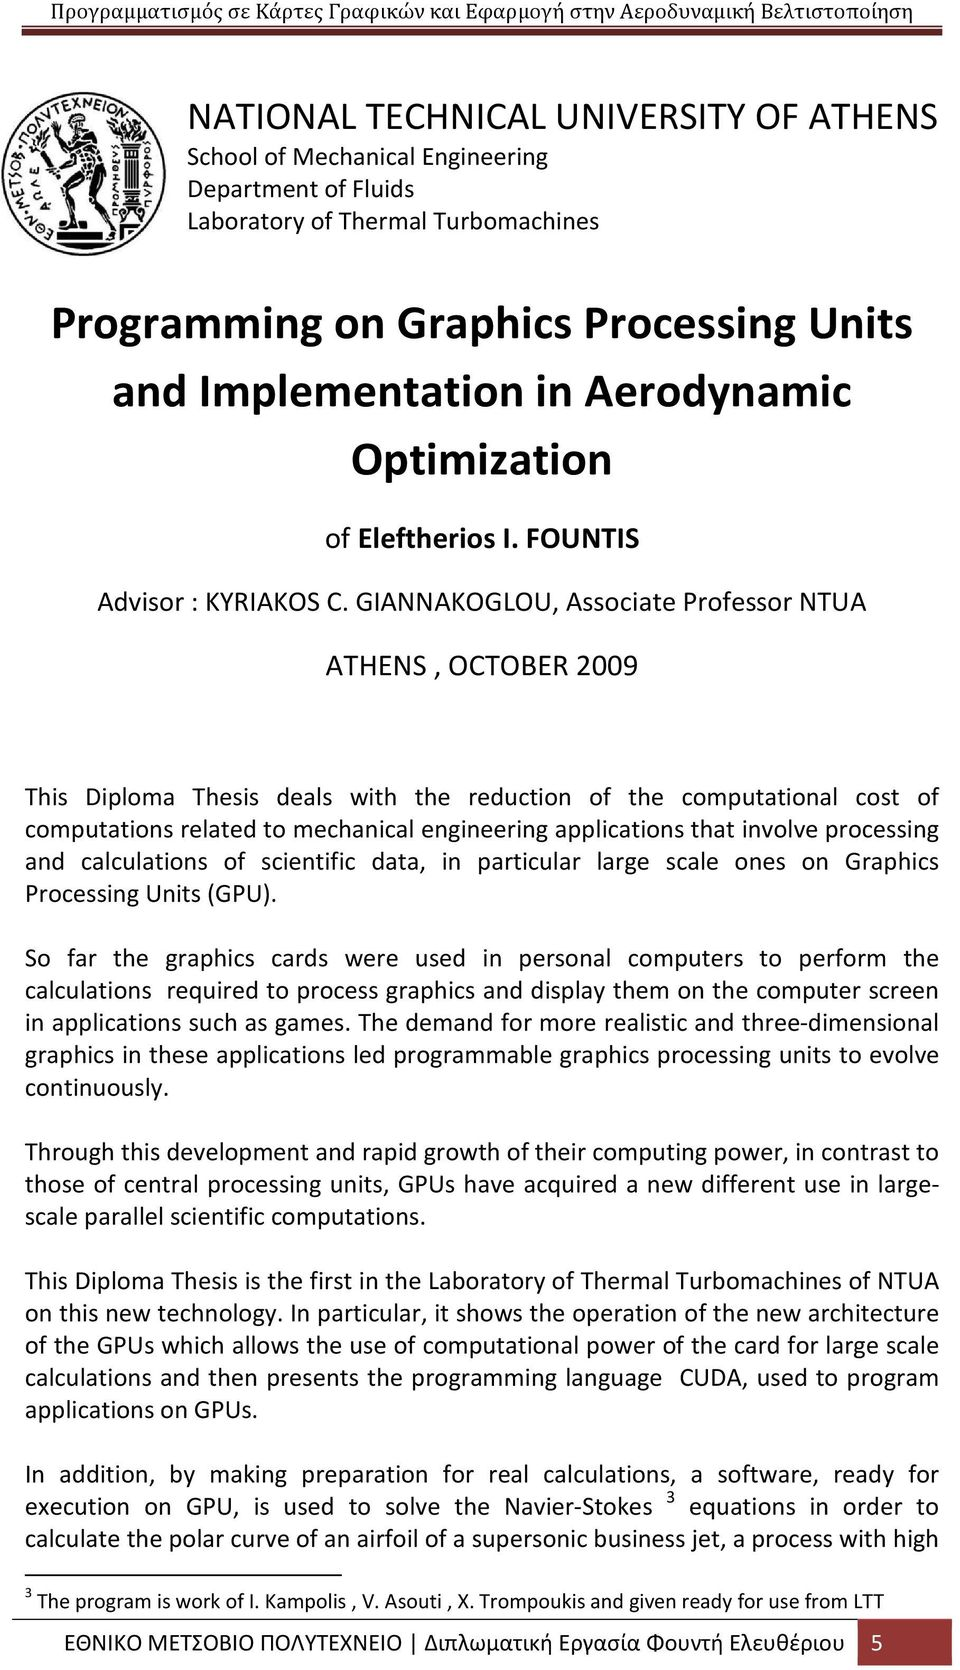 GIANNAKOGLOU, Associate Professor NTUA ATHENS, OCTOBER 2009 This Diploma Thesis deals with the reduction of the computational cost of computations related to mechanical engineering applications that